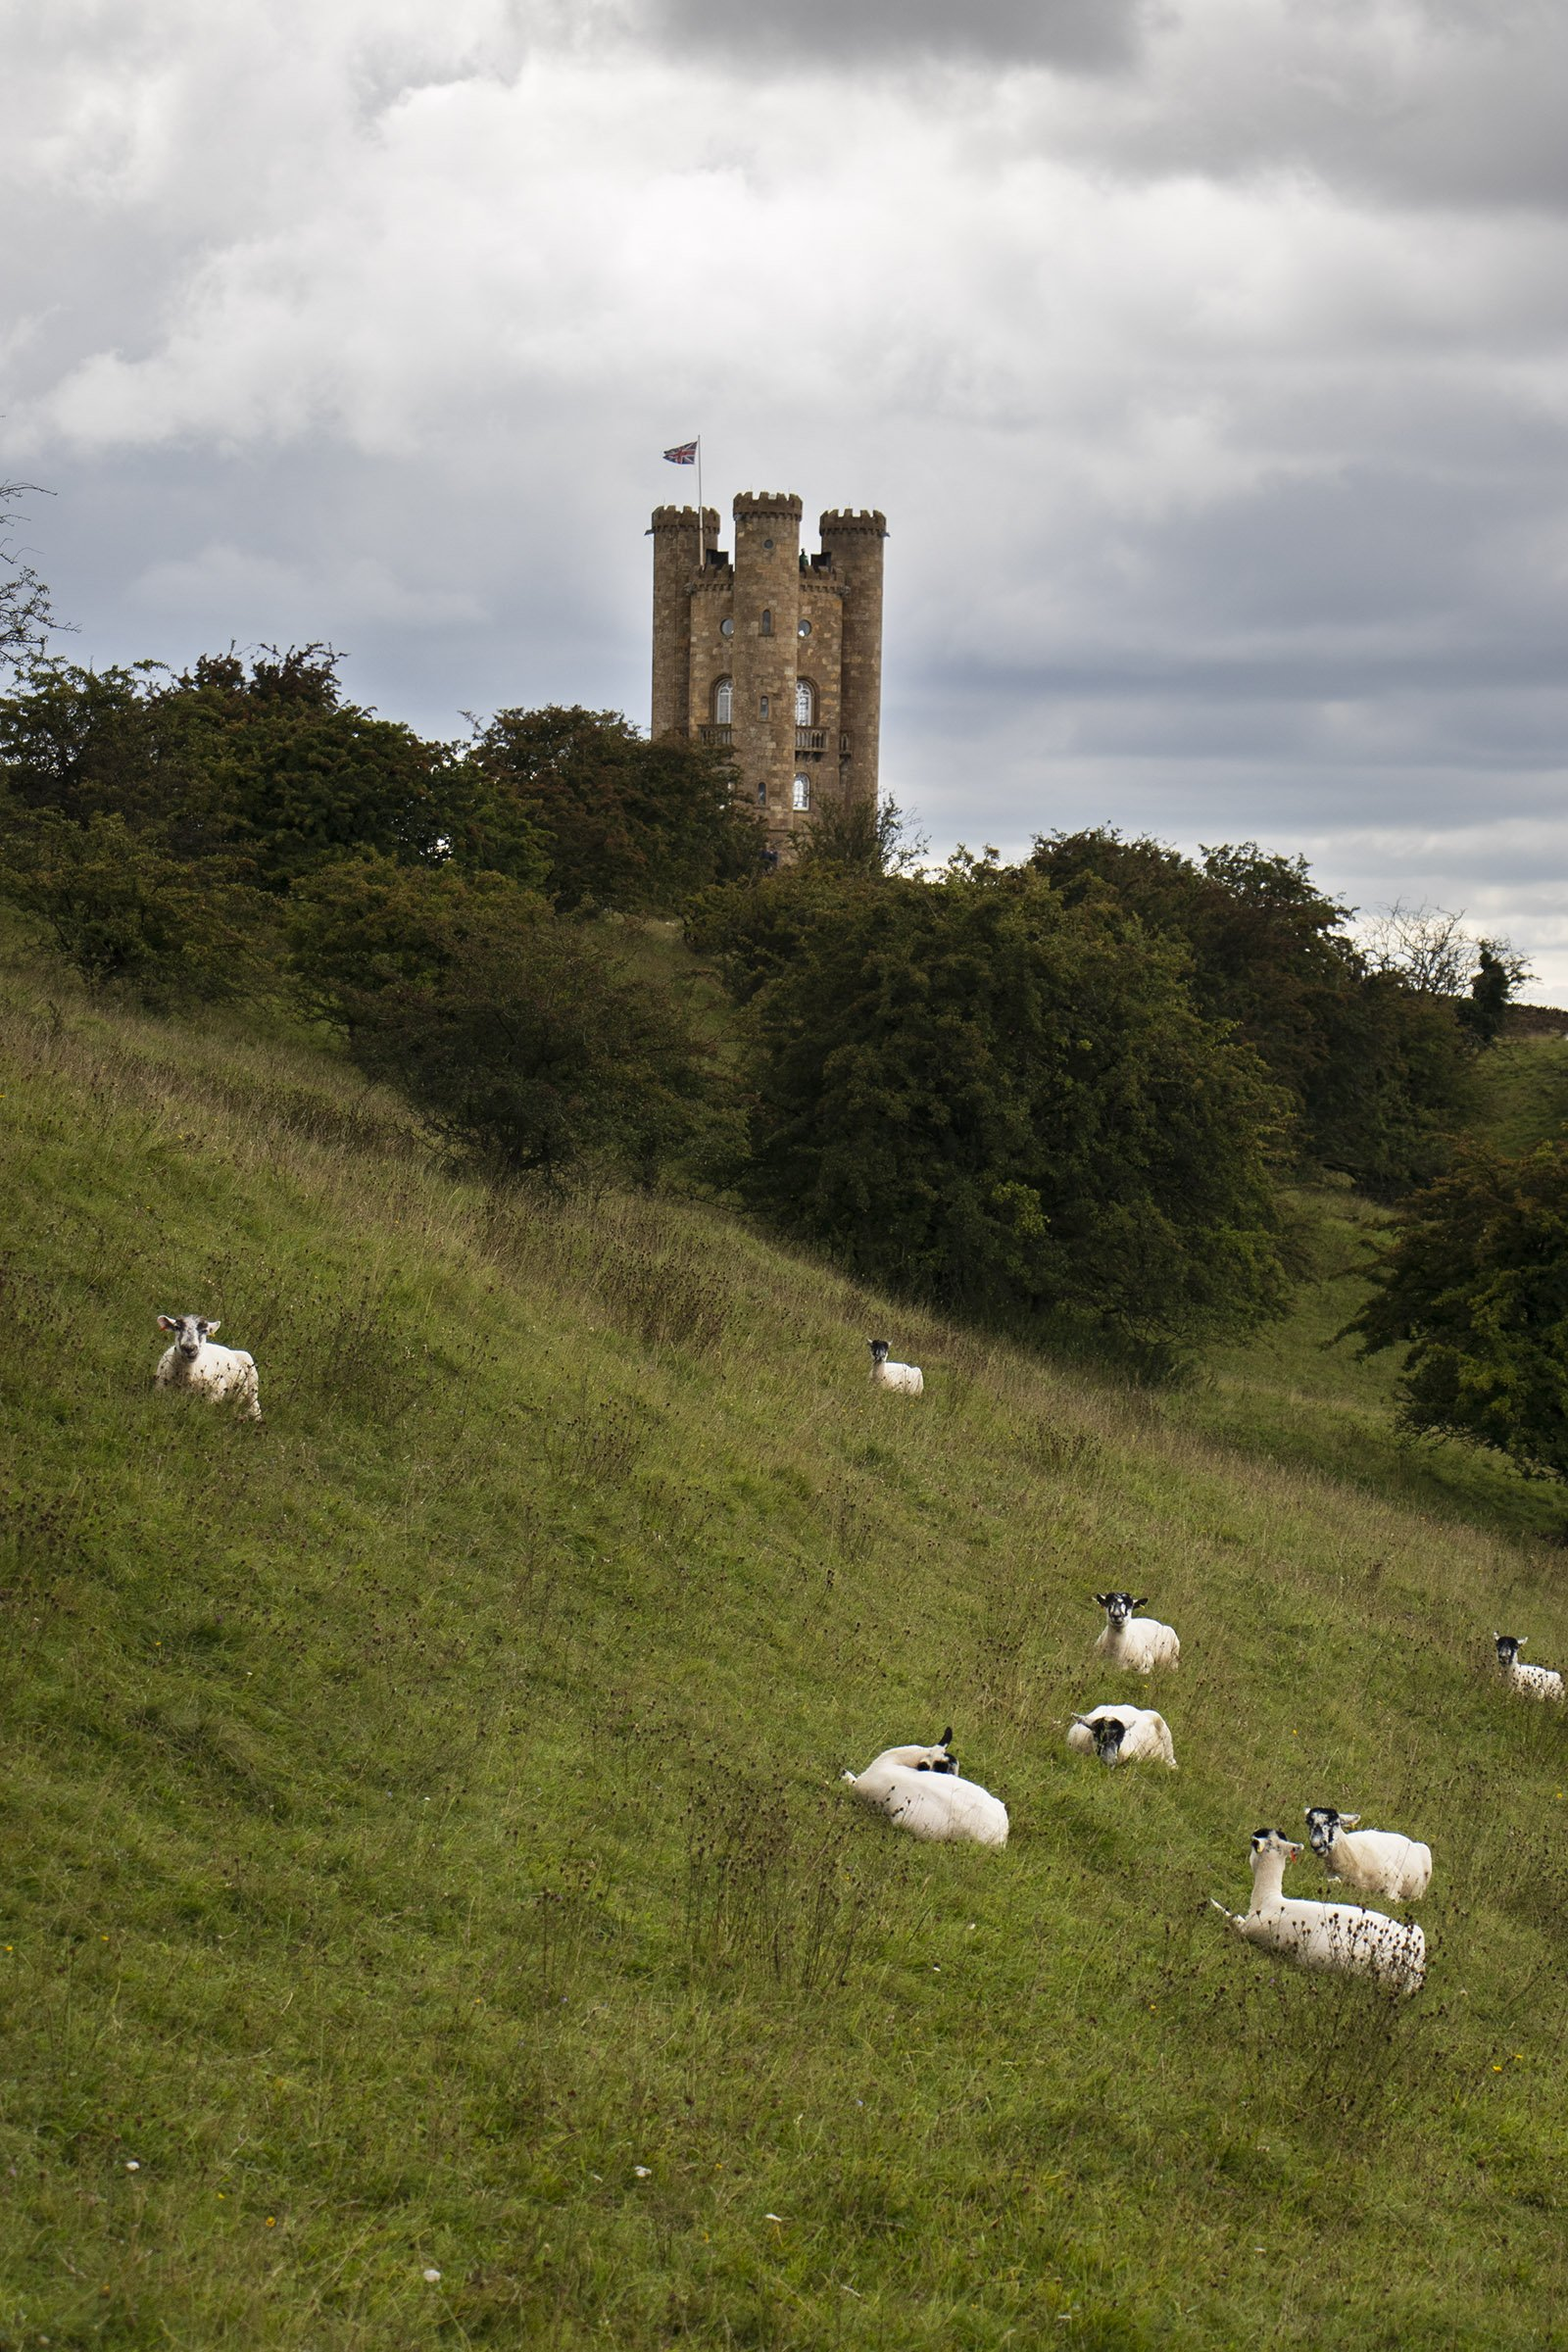 Broadway tower and sheep